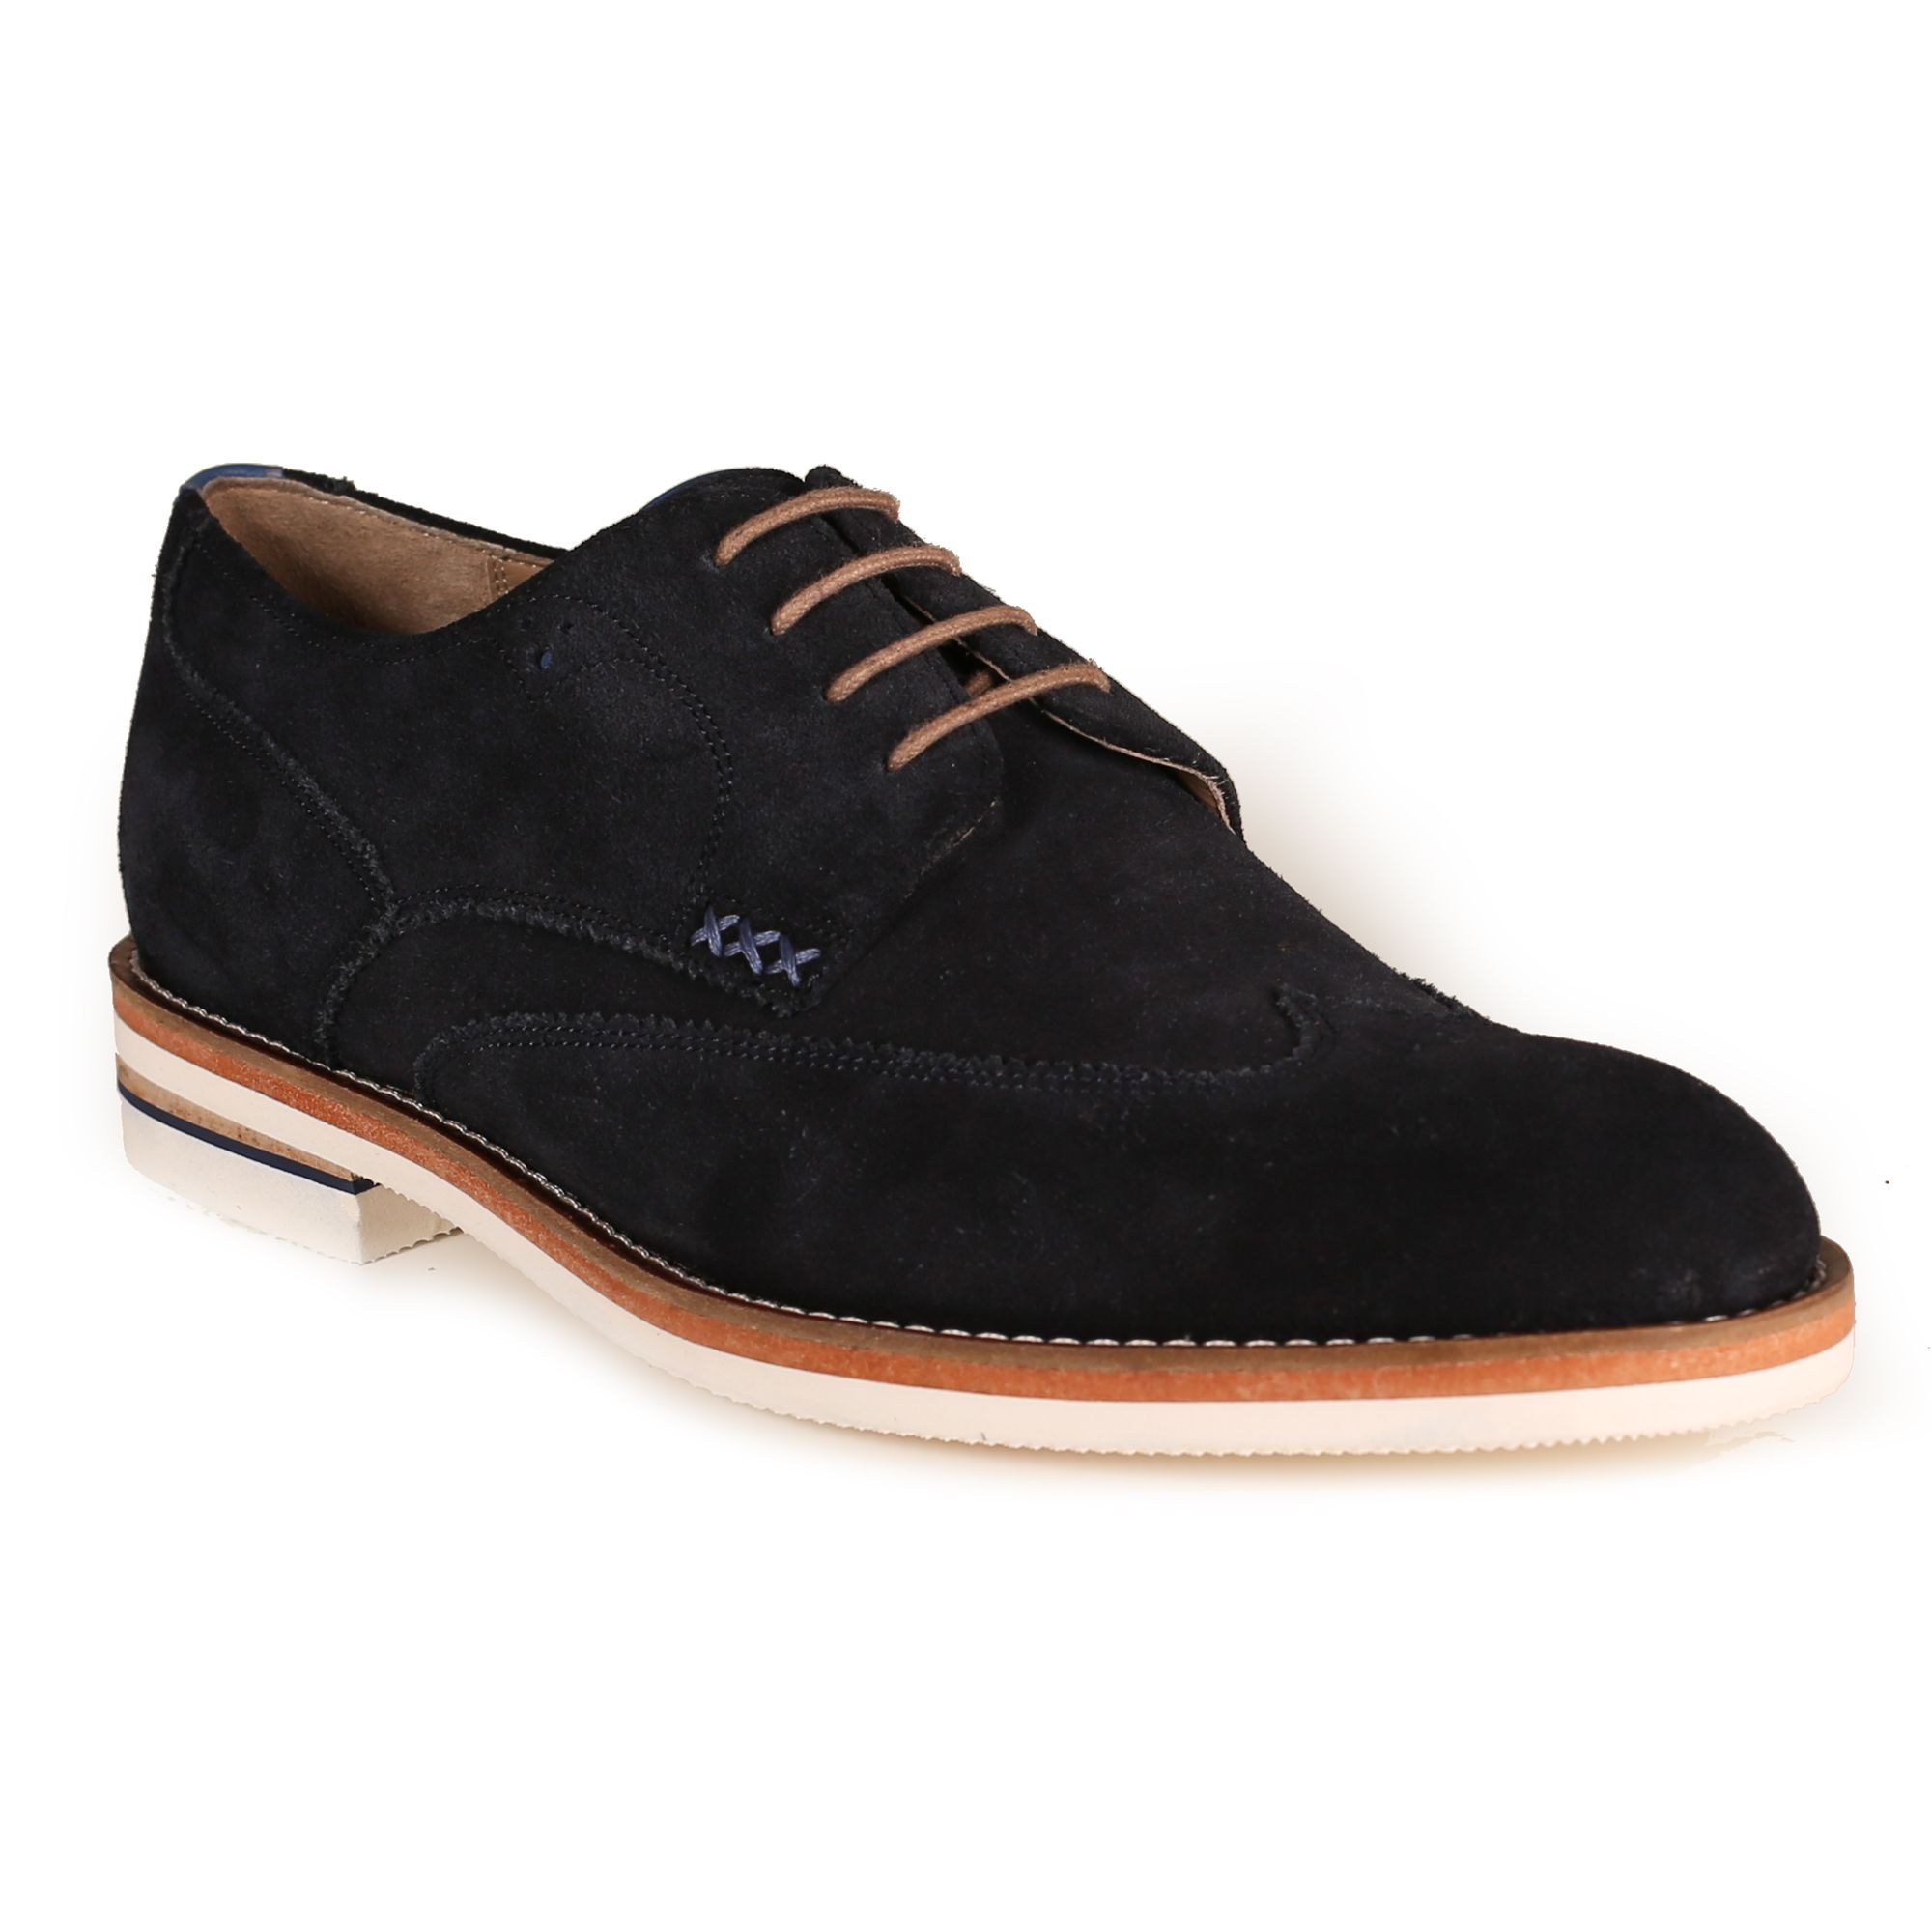 Oliver Sweeney Oliver Sweeney Connell Suede Derby Shoes